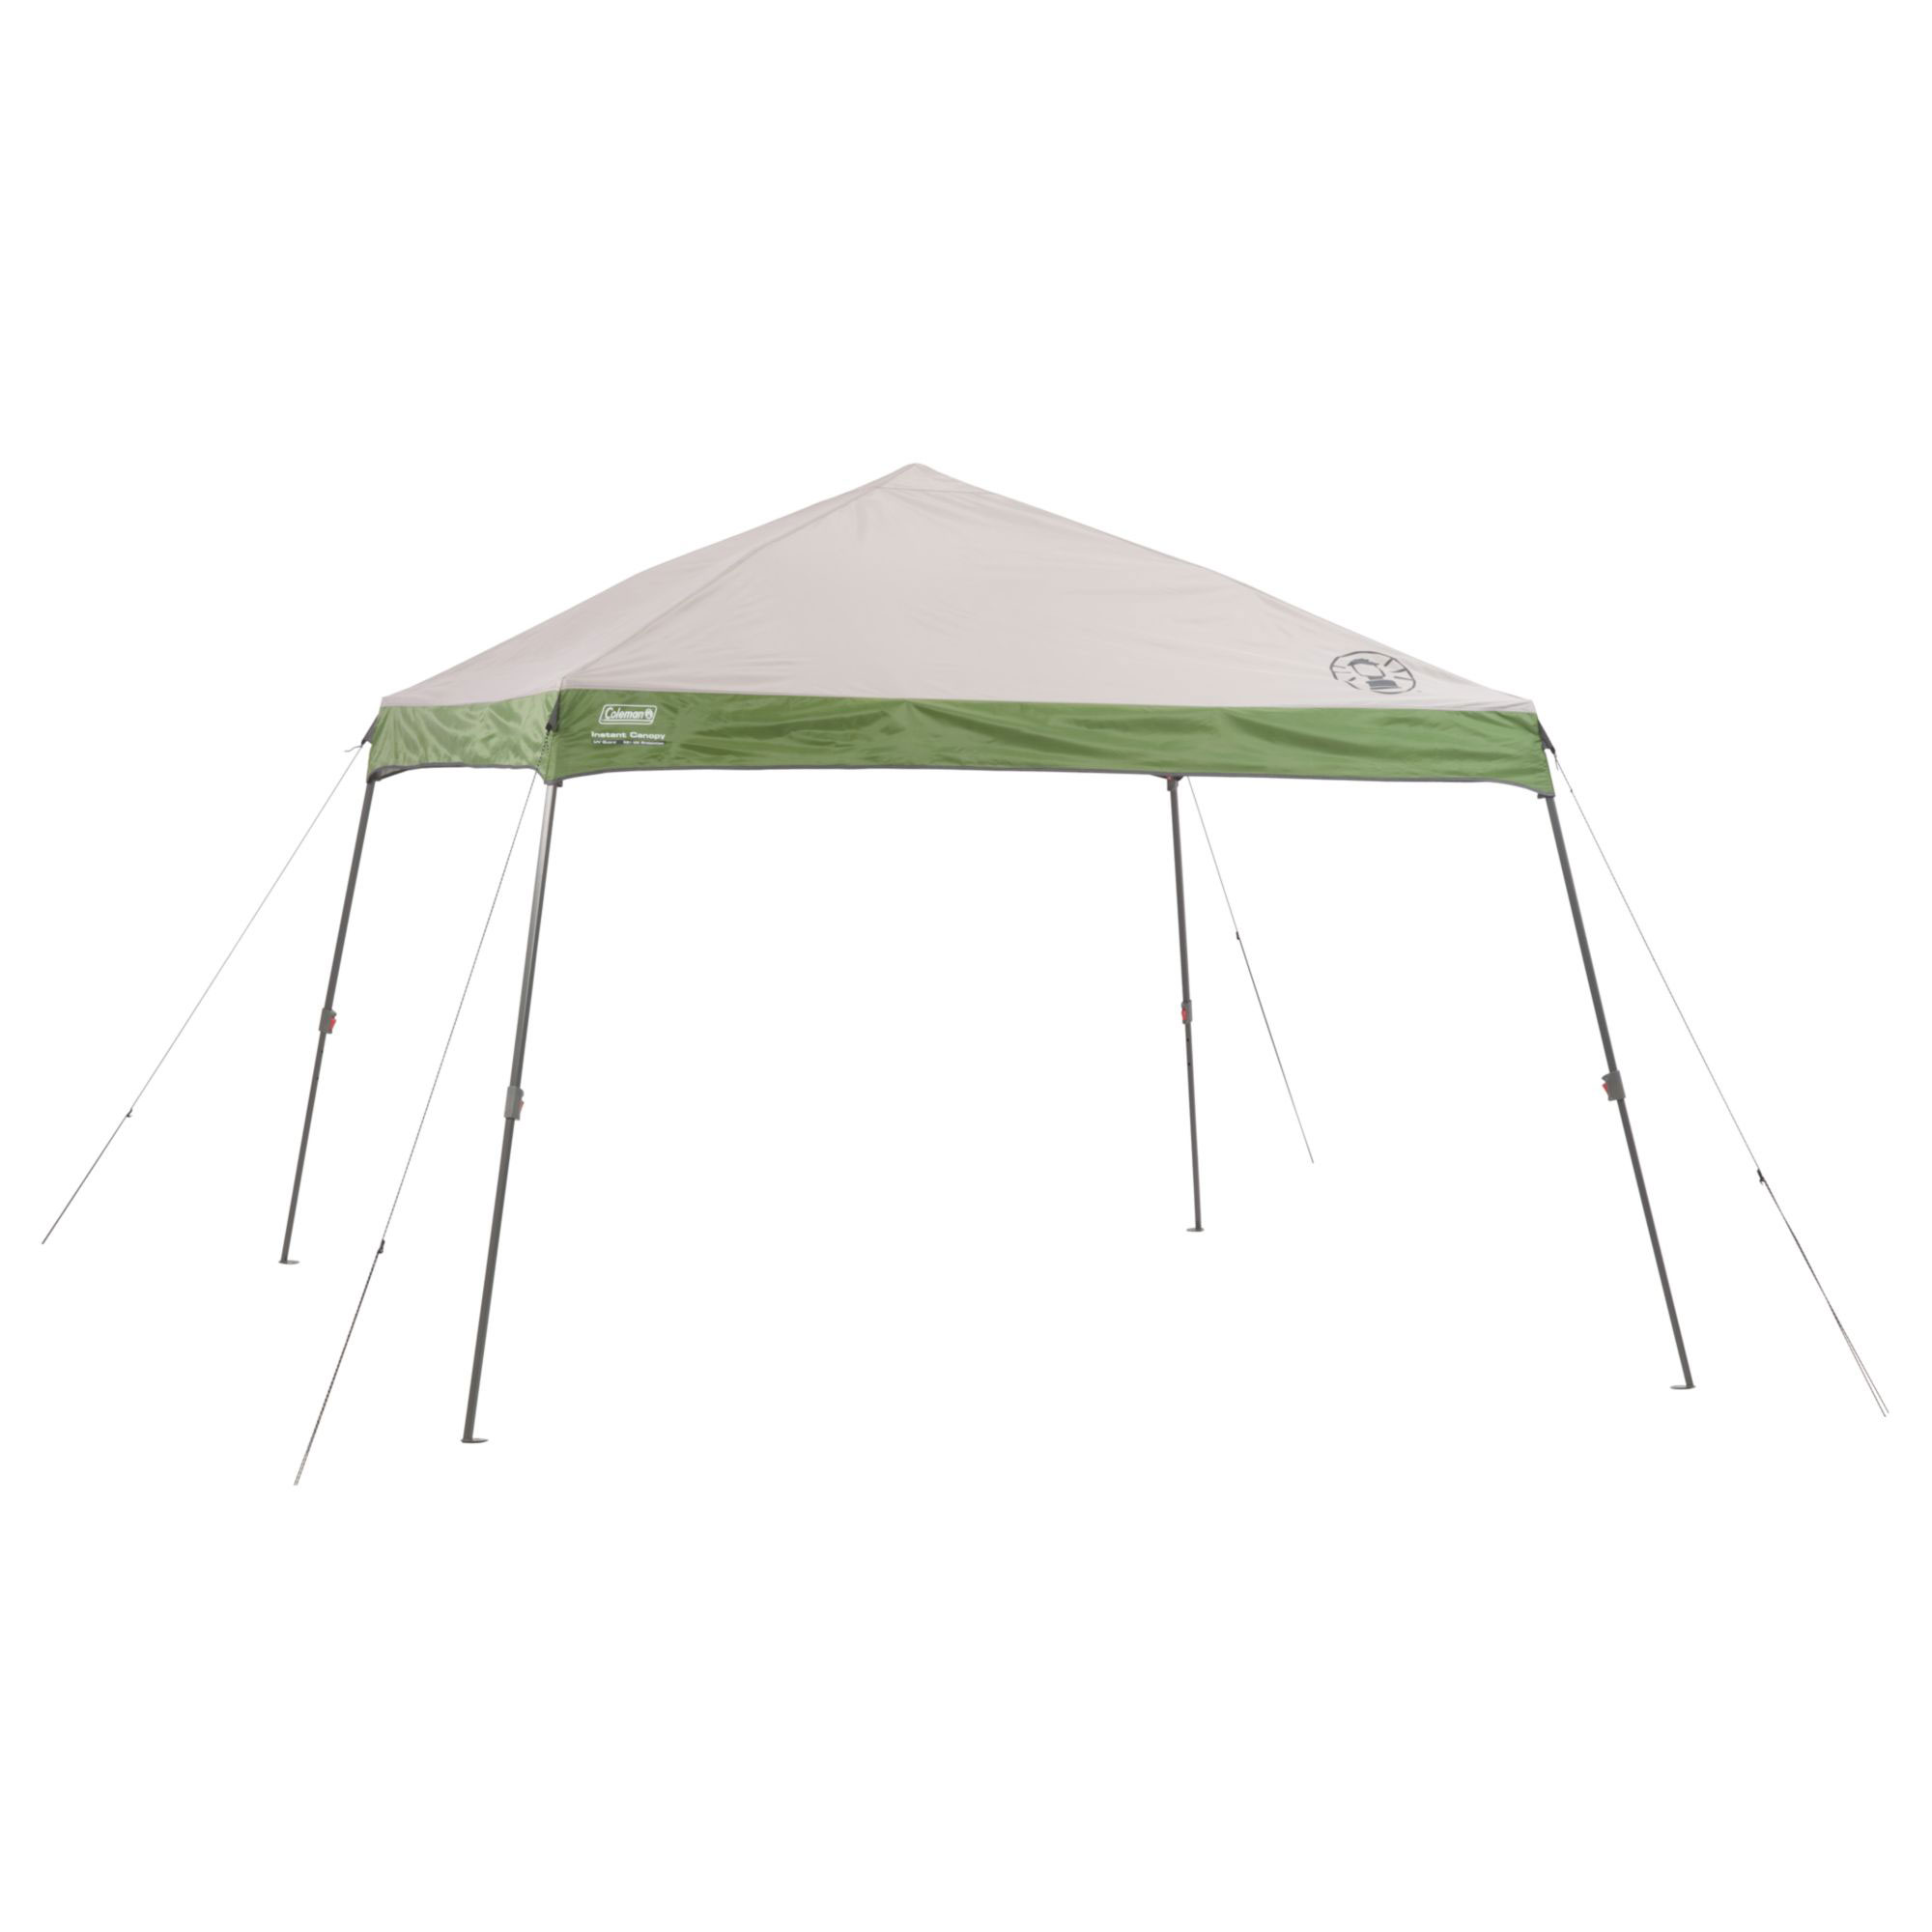 Coleman 12 X 12 Camping Tailgating Backyard Wide Base